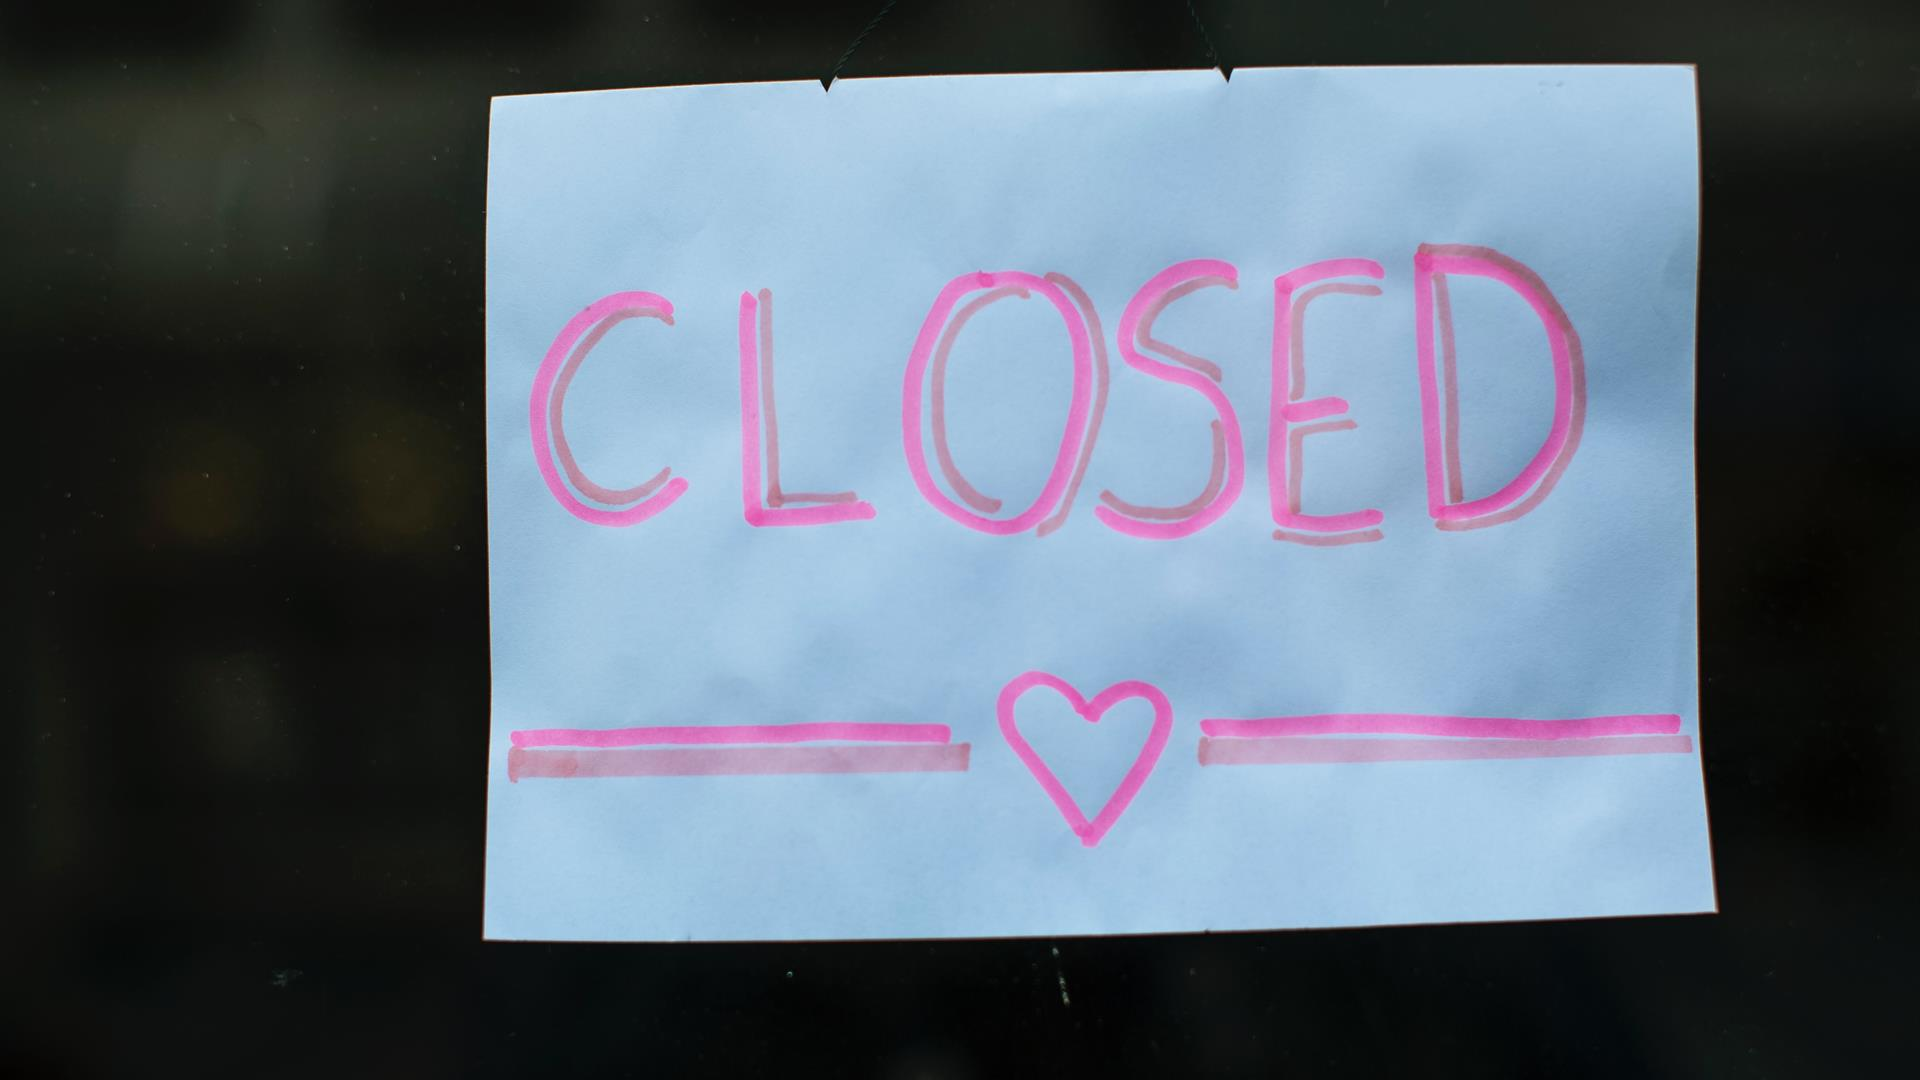 Markus Spiske Closed Unsplash